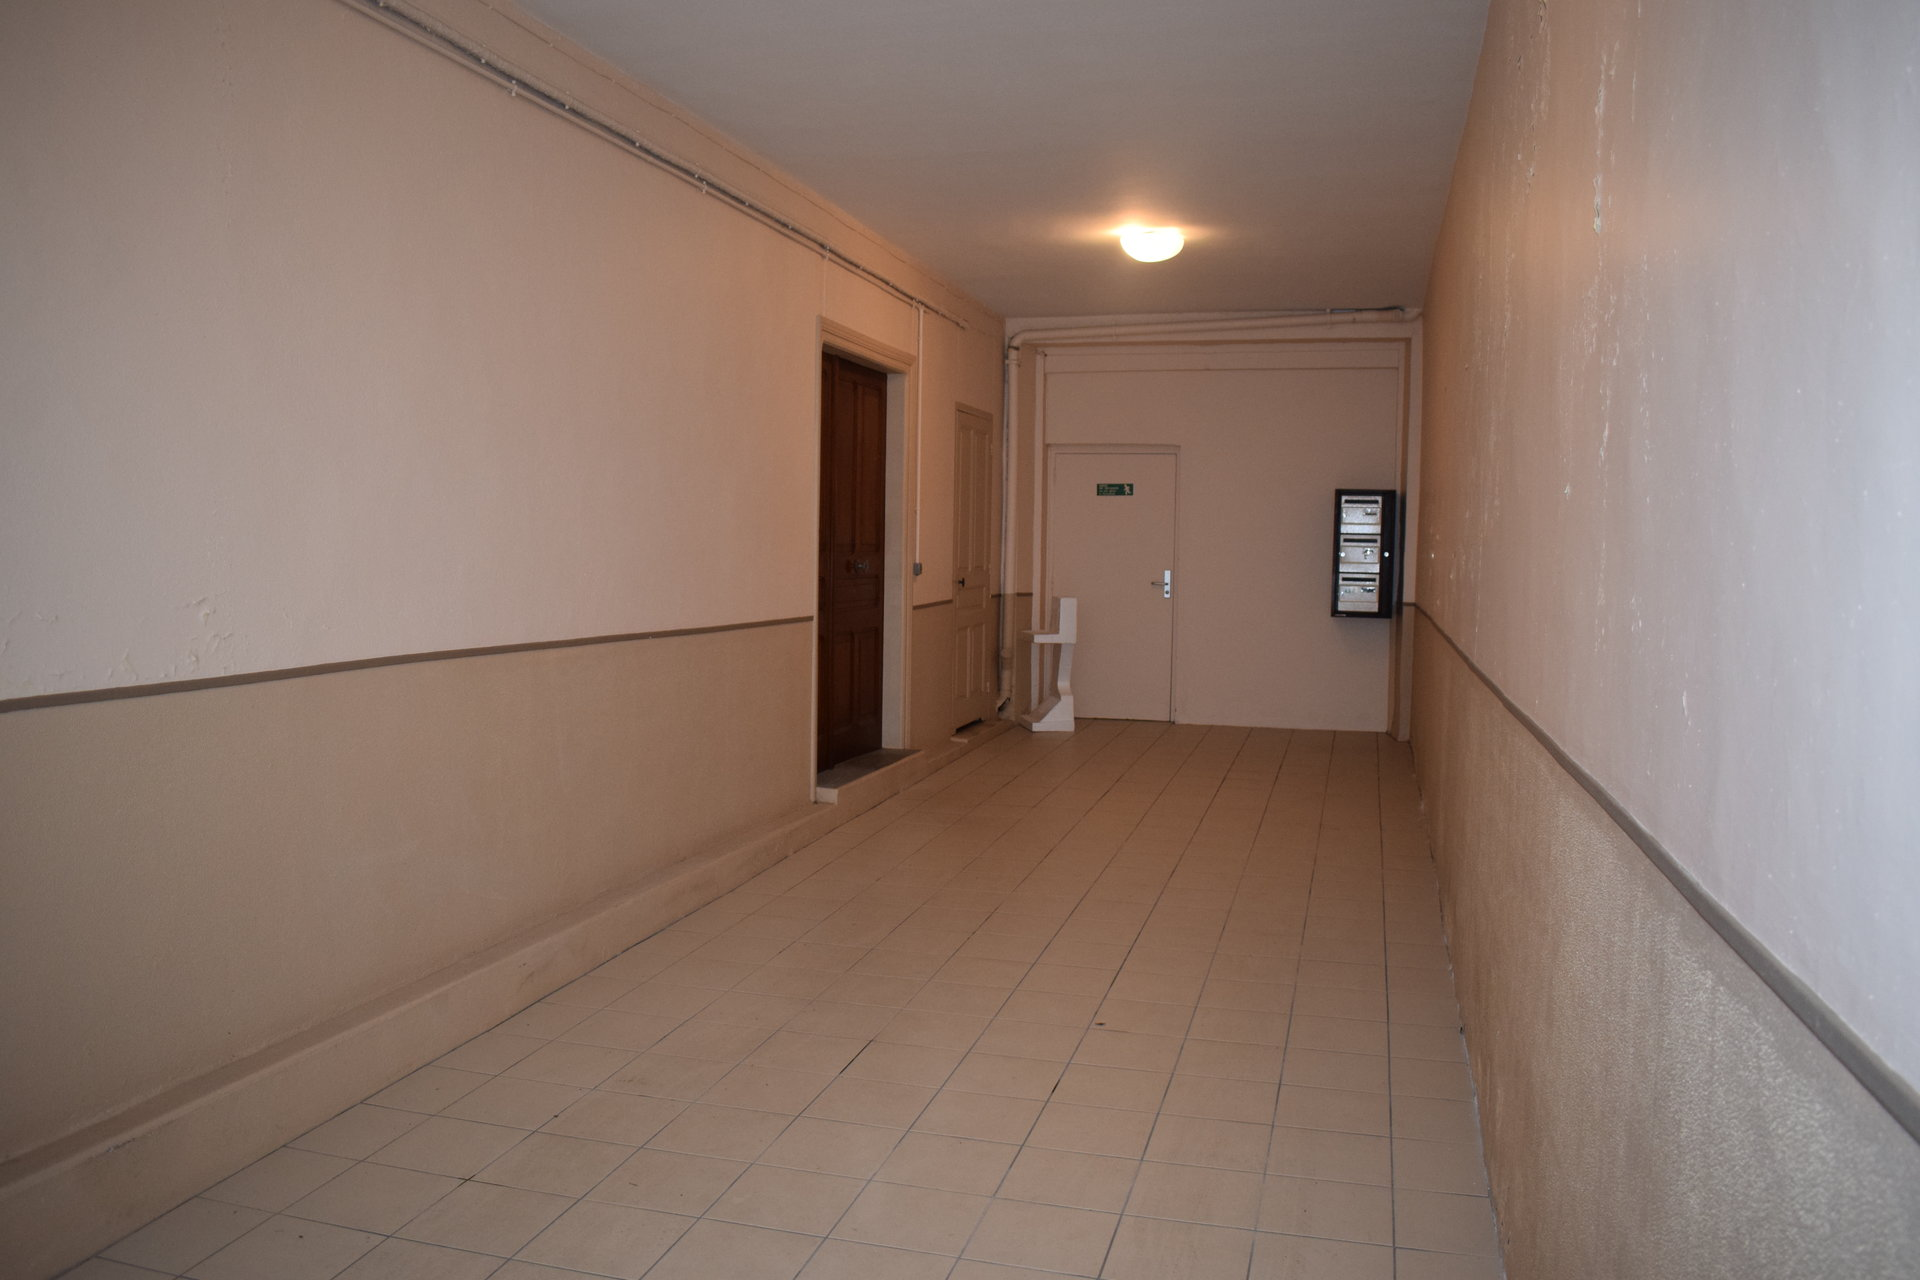 SIAM TRIANGLE D'OR 130m2/3 CHAMBRES /STATIONNEMENT